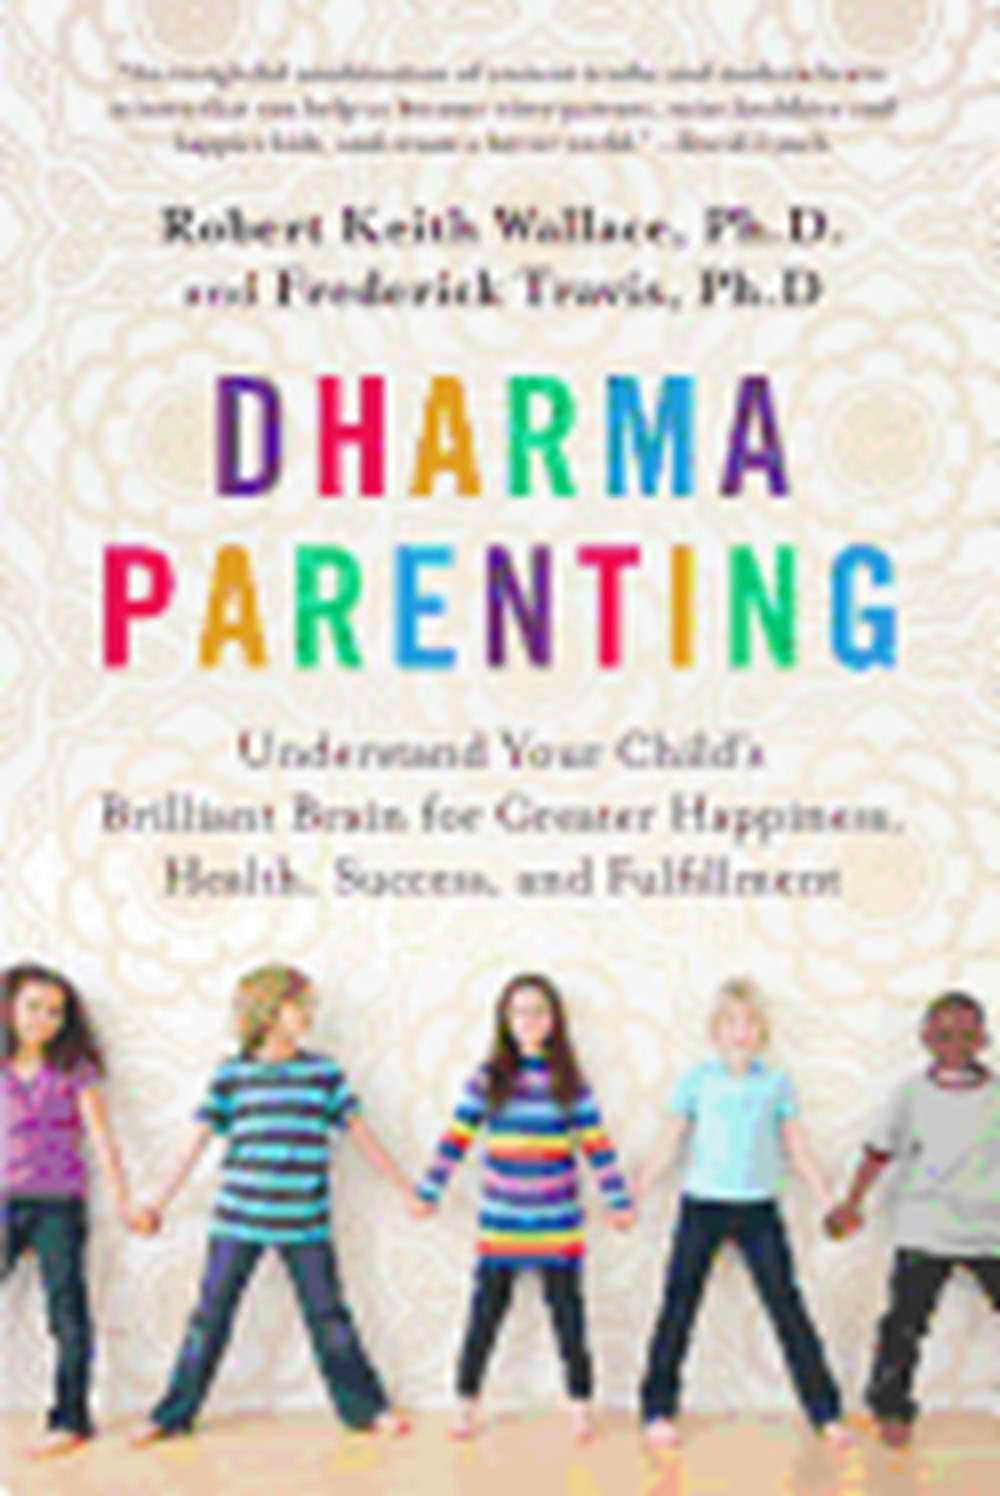 Dharma Parenting Understand Your Child's Brilliant Brain for Greater Happiness, Health, Success, and